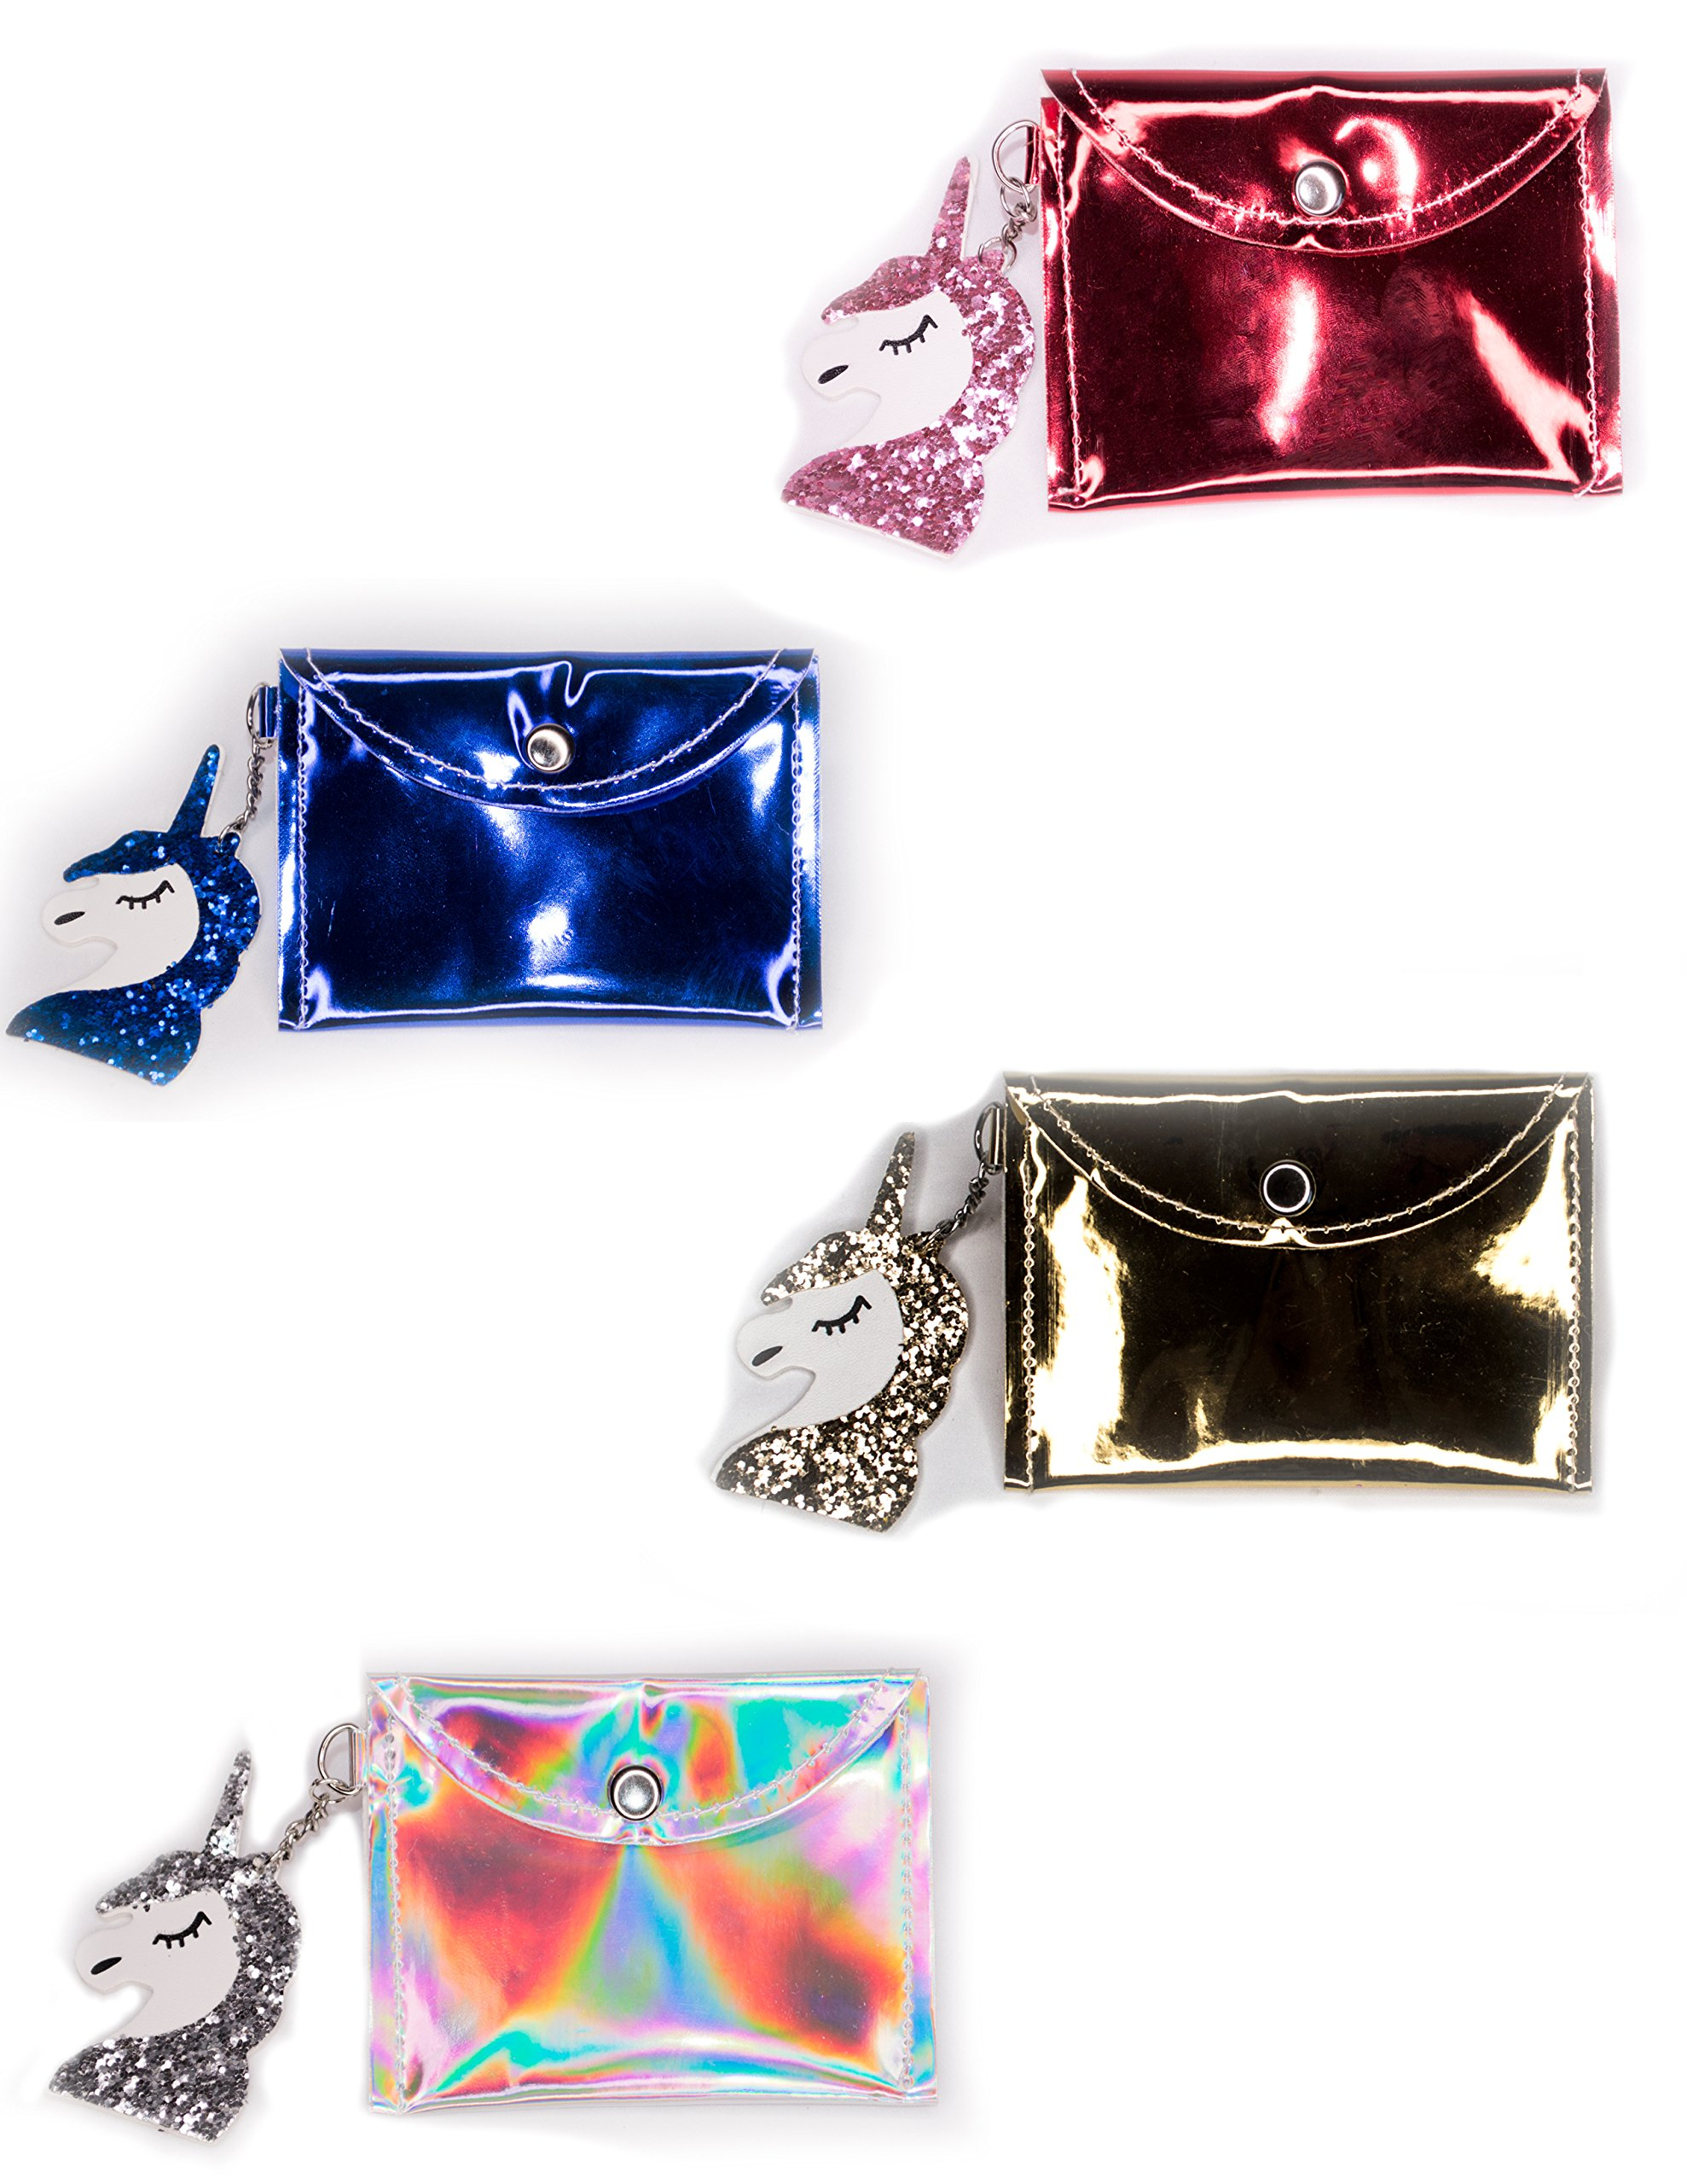 Coin Purse for Girls Unicorn, Holographic Unicorn Mini Sequin Wallet Coin Purse (4 Pack - Red, Blue, Holographic, Gold) by Rising Phoenix Industries